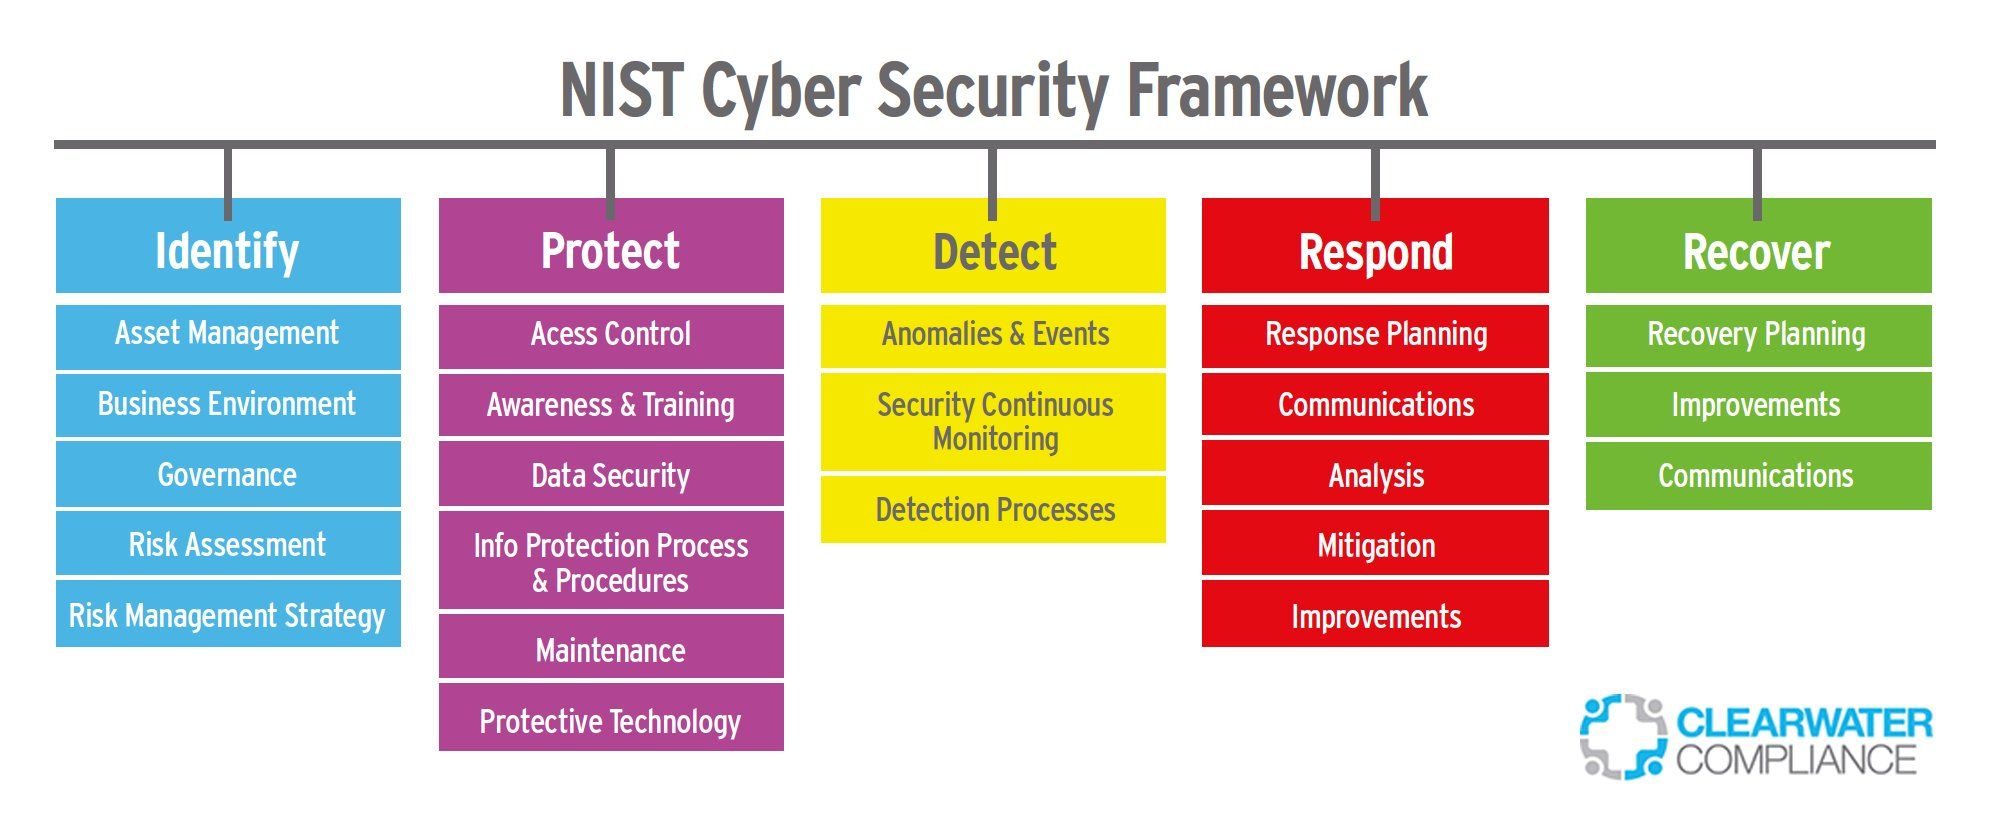 Cyber Security Architecture with NIST Cyber Security Framework